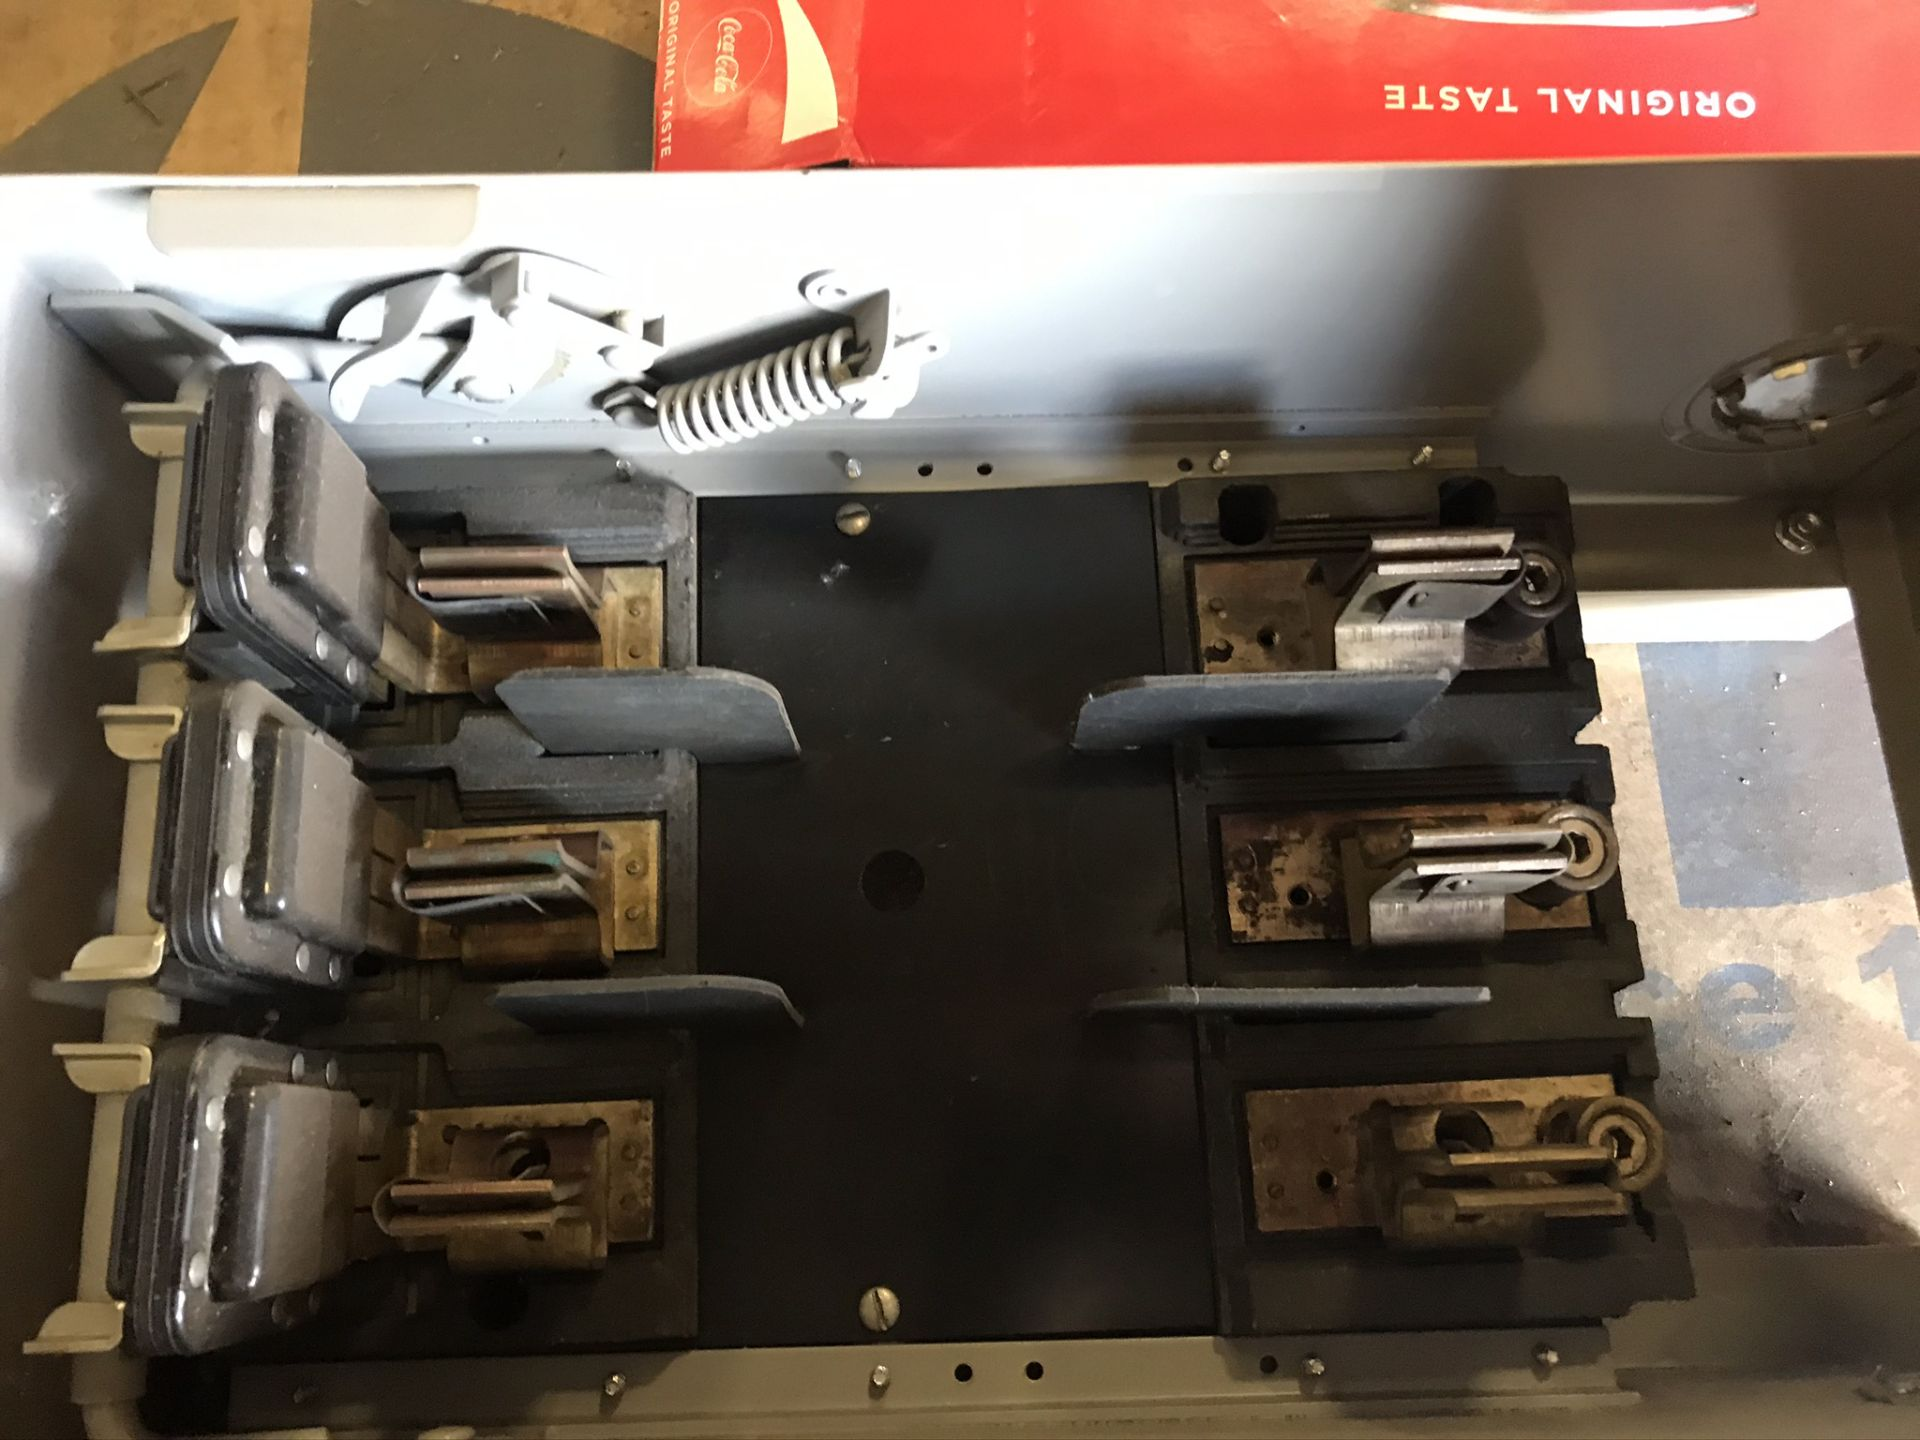 Lot of (7) 200 Amp Bus Boxes - Image 2 of 4